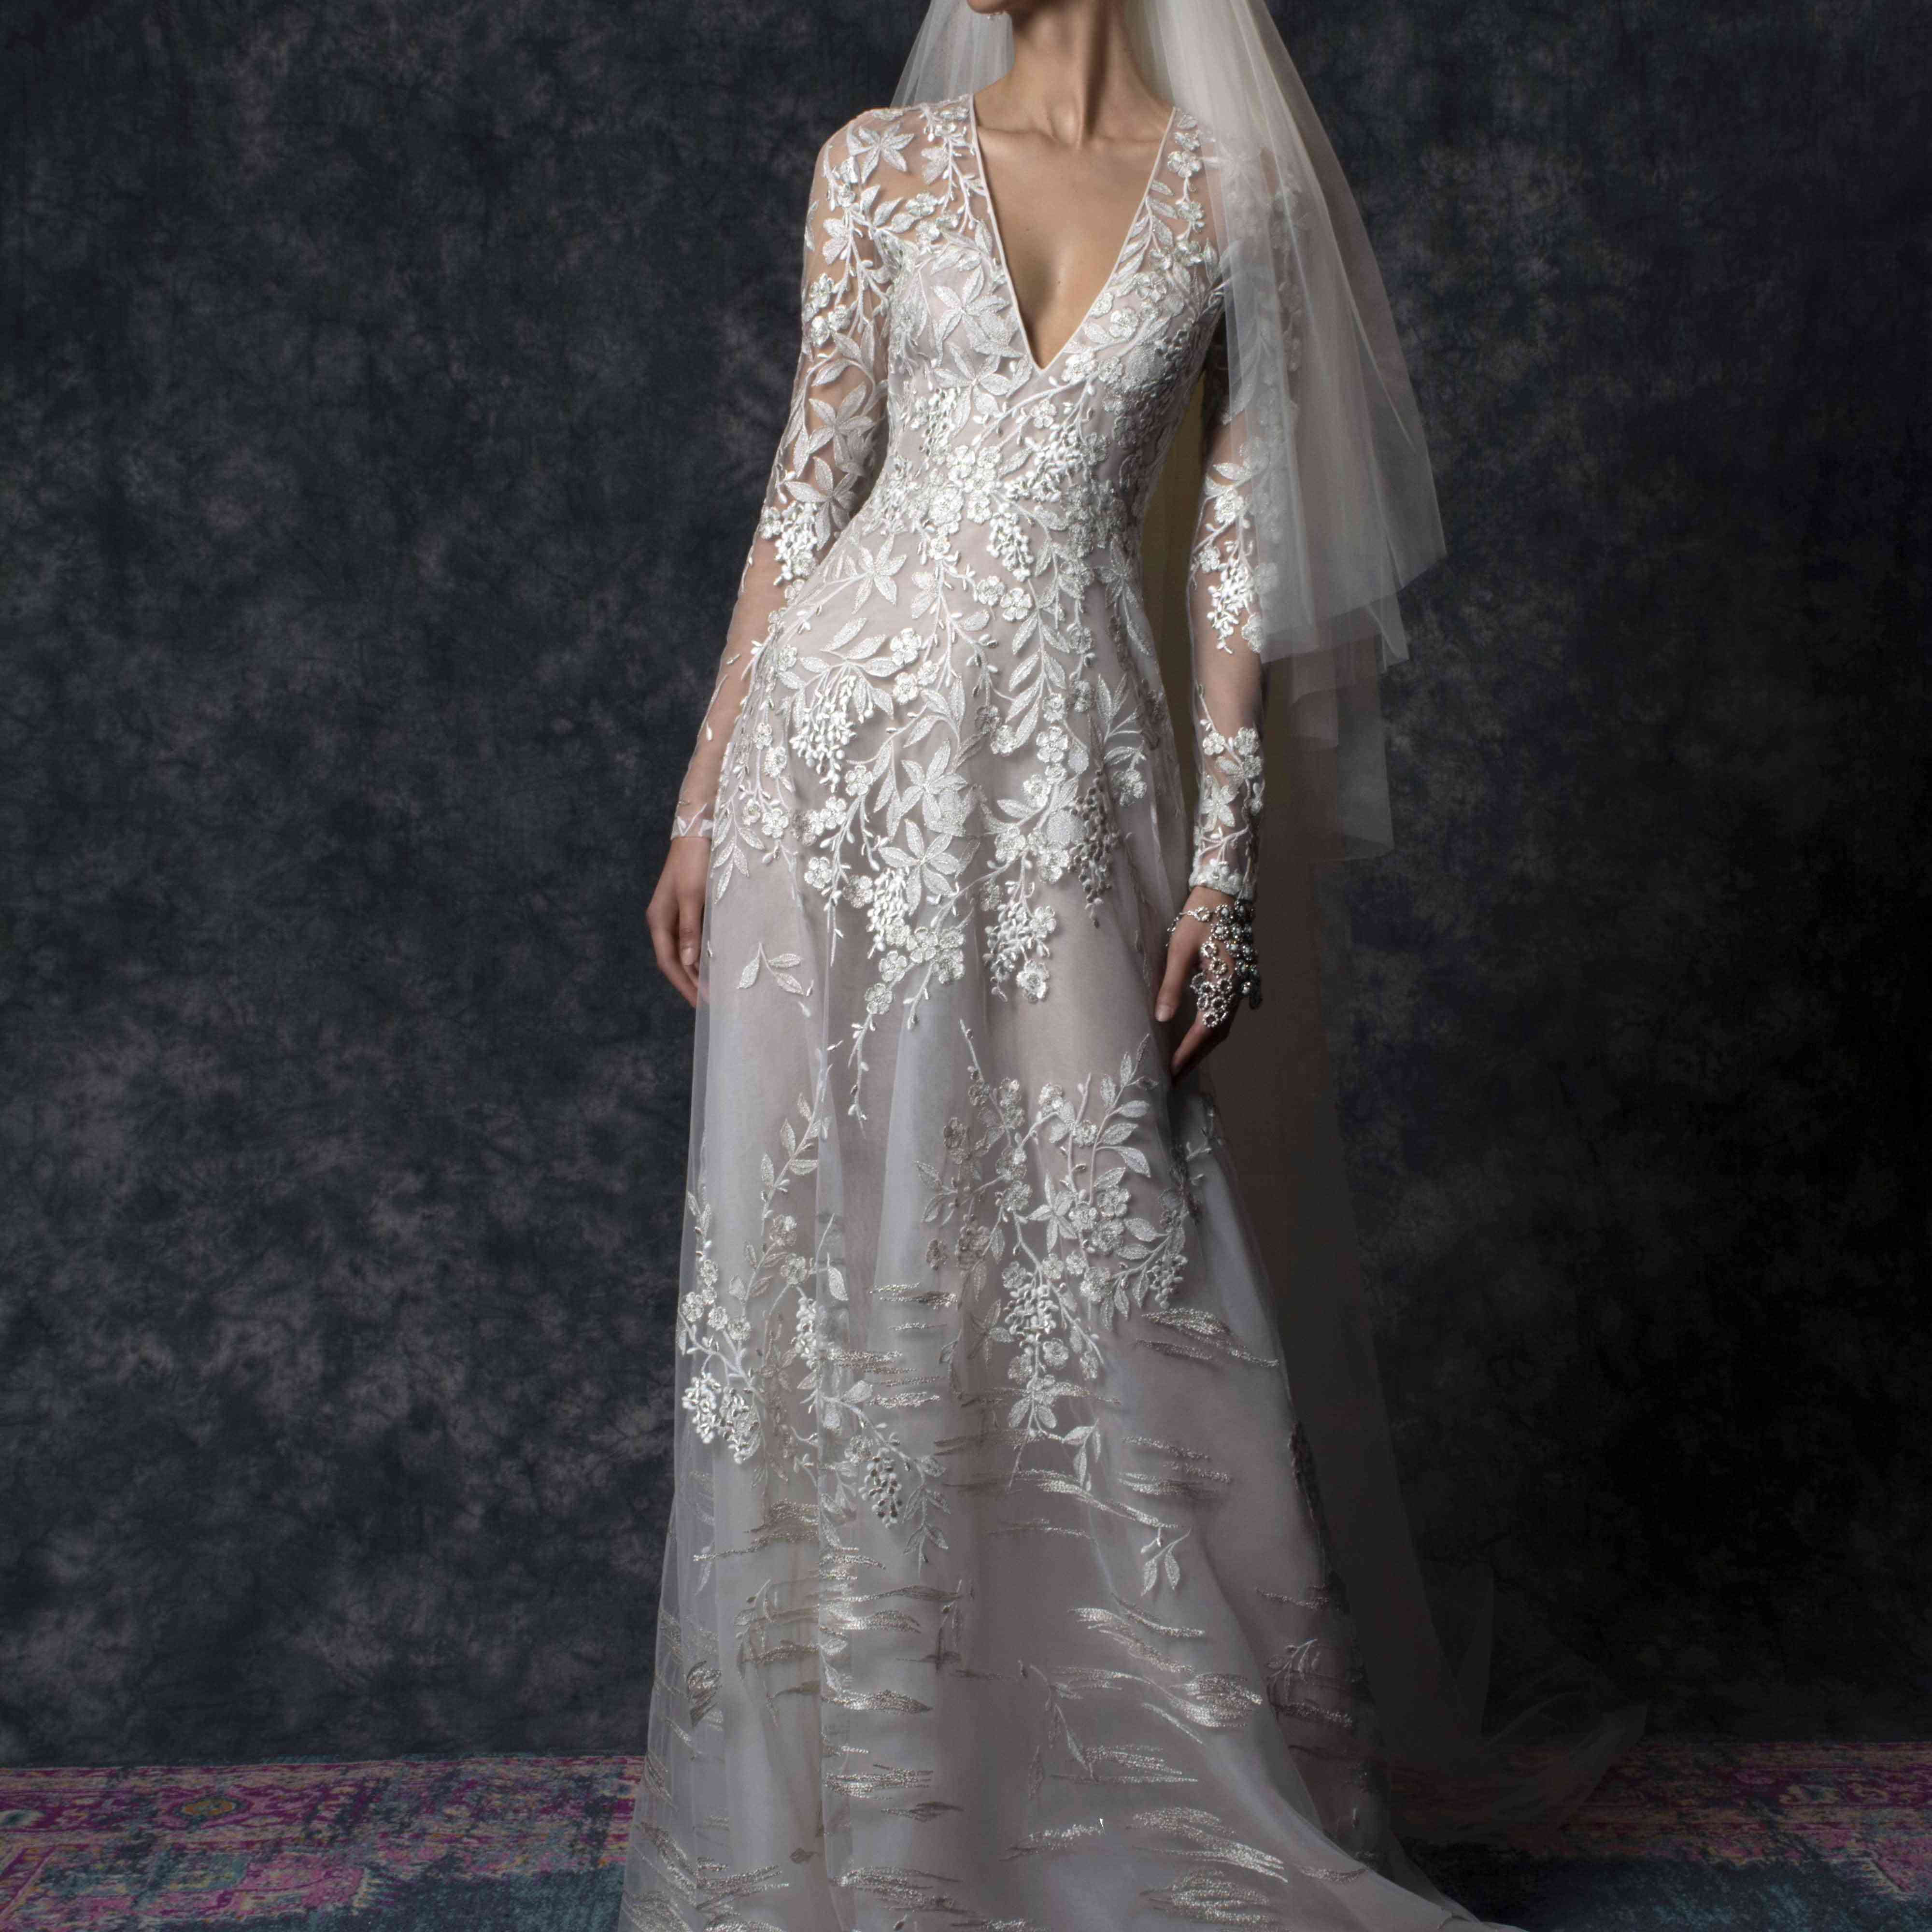 Model in long-sleeve V-neck gown with floral embroidery